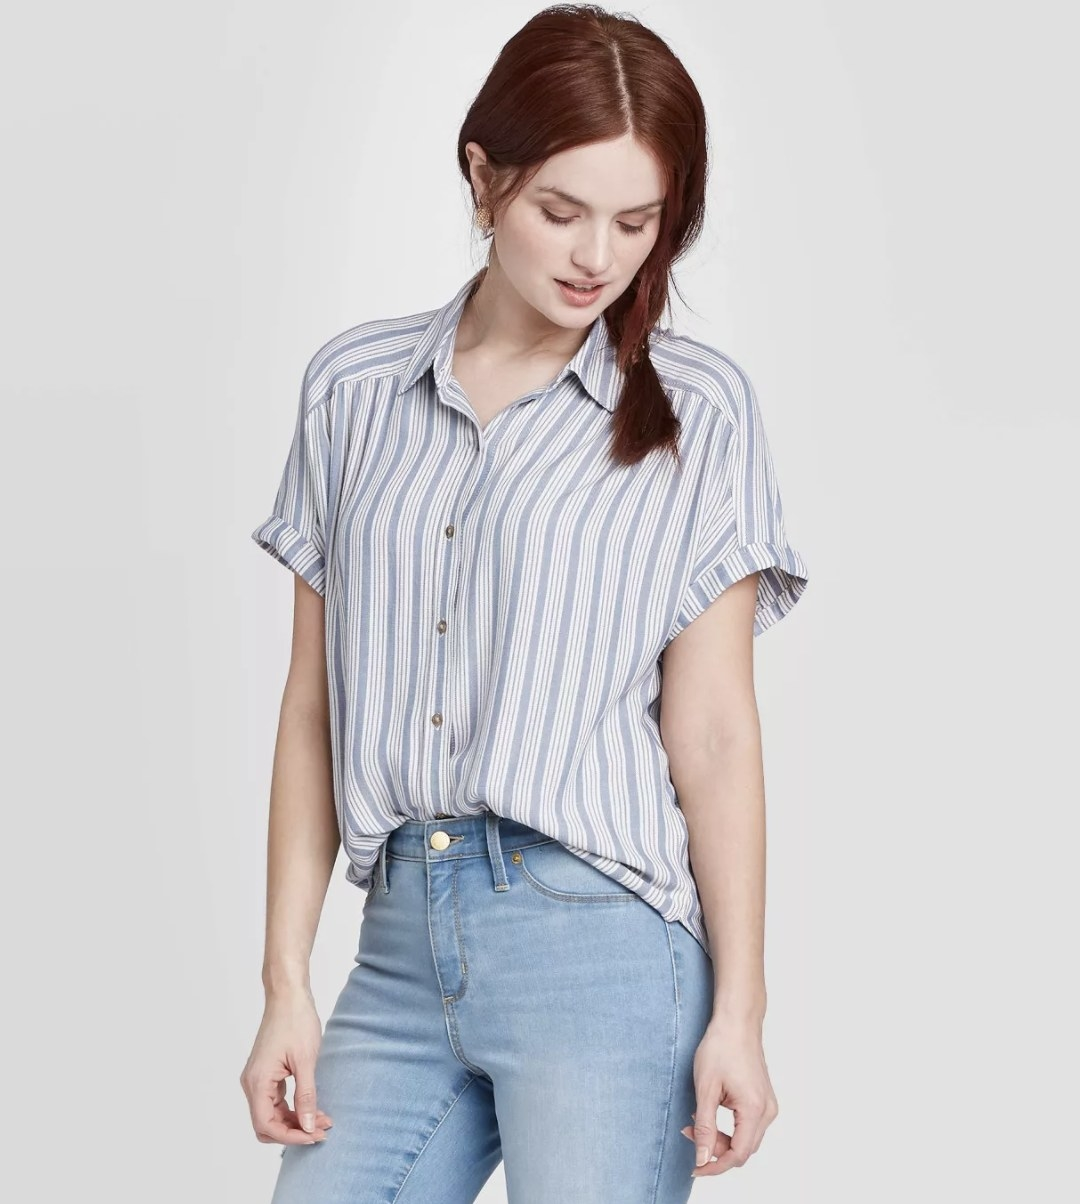 model wearing white and blue striped shirt